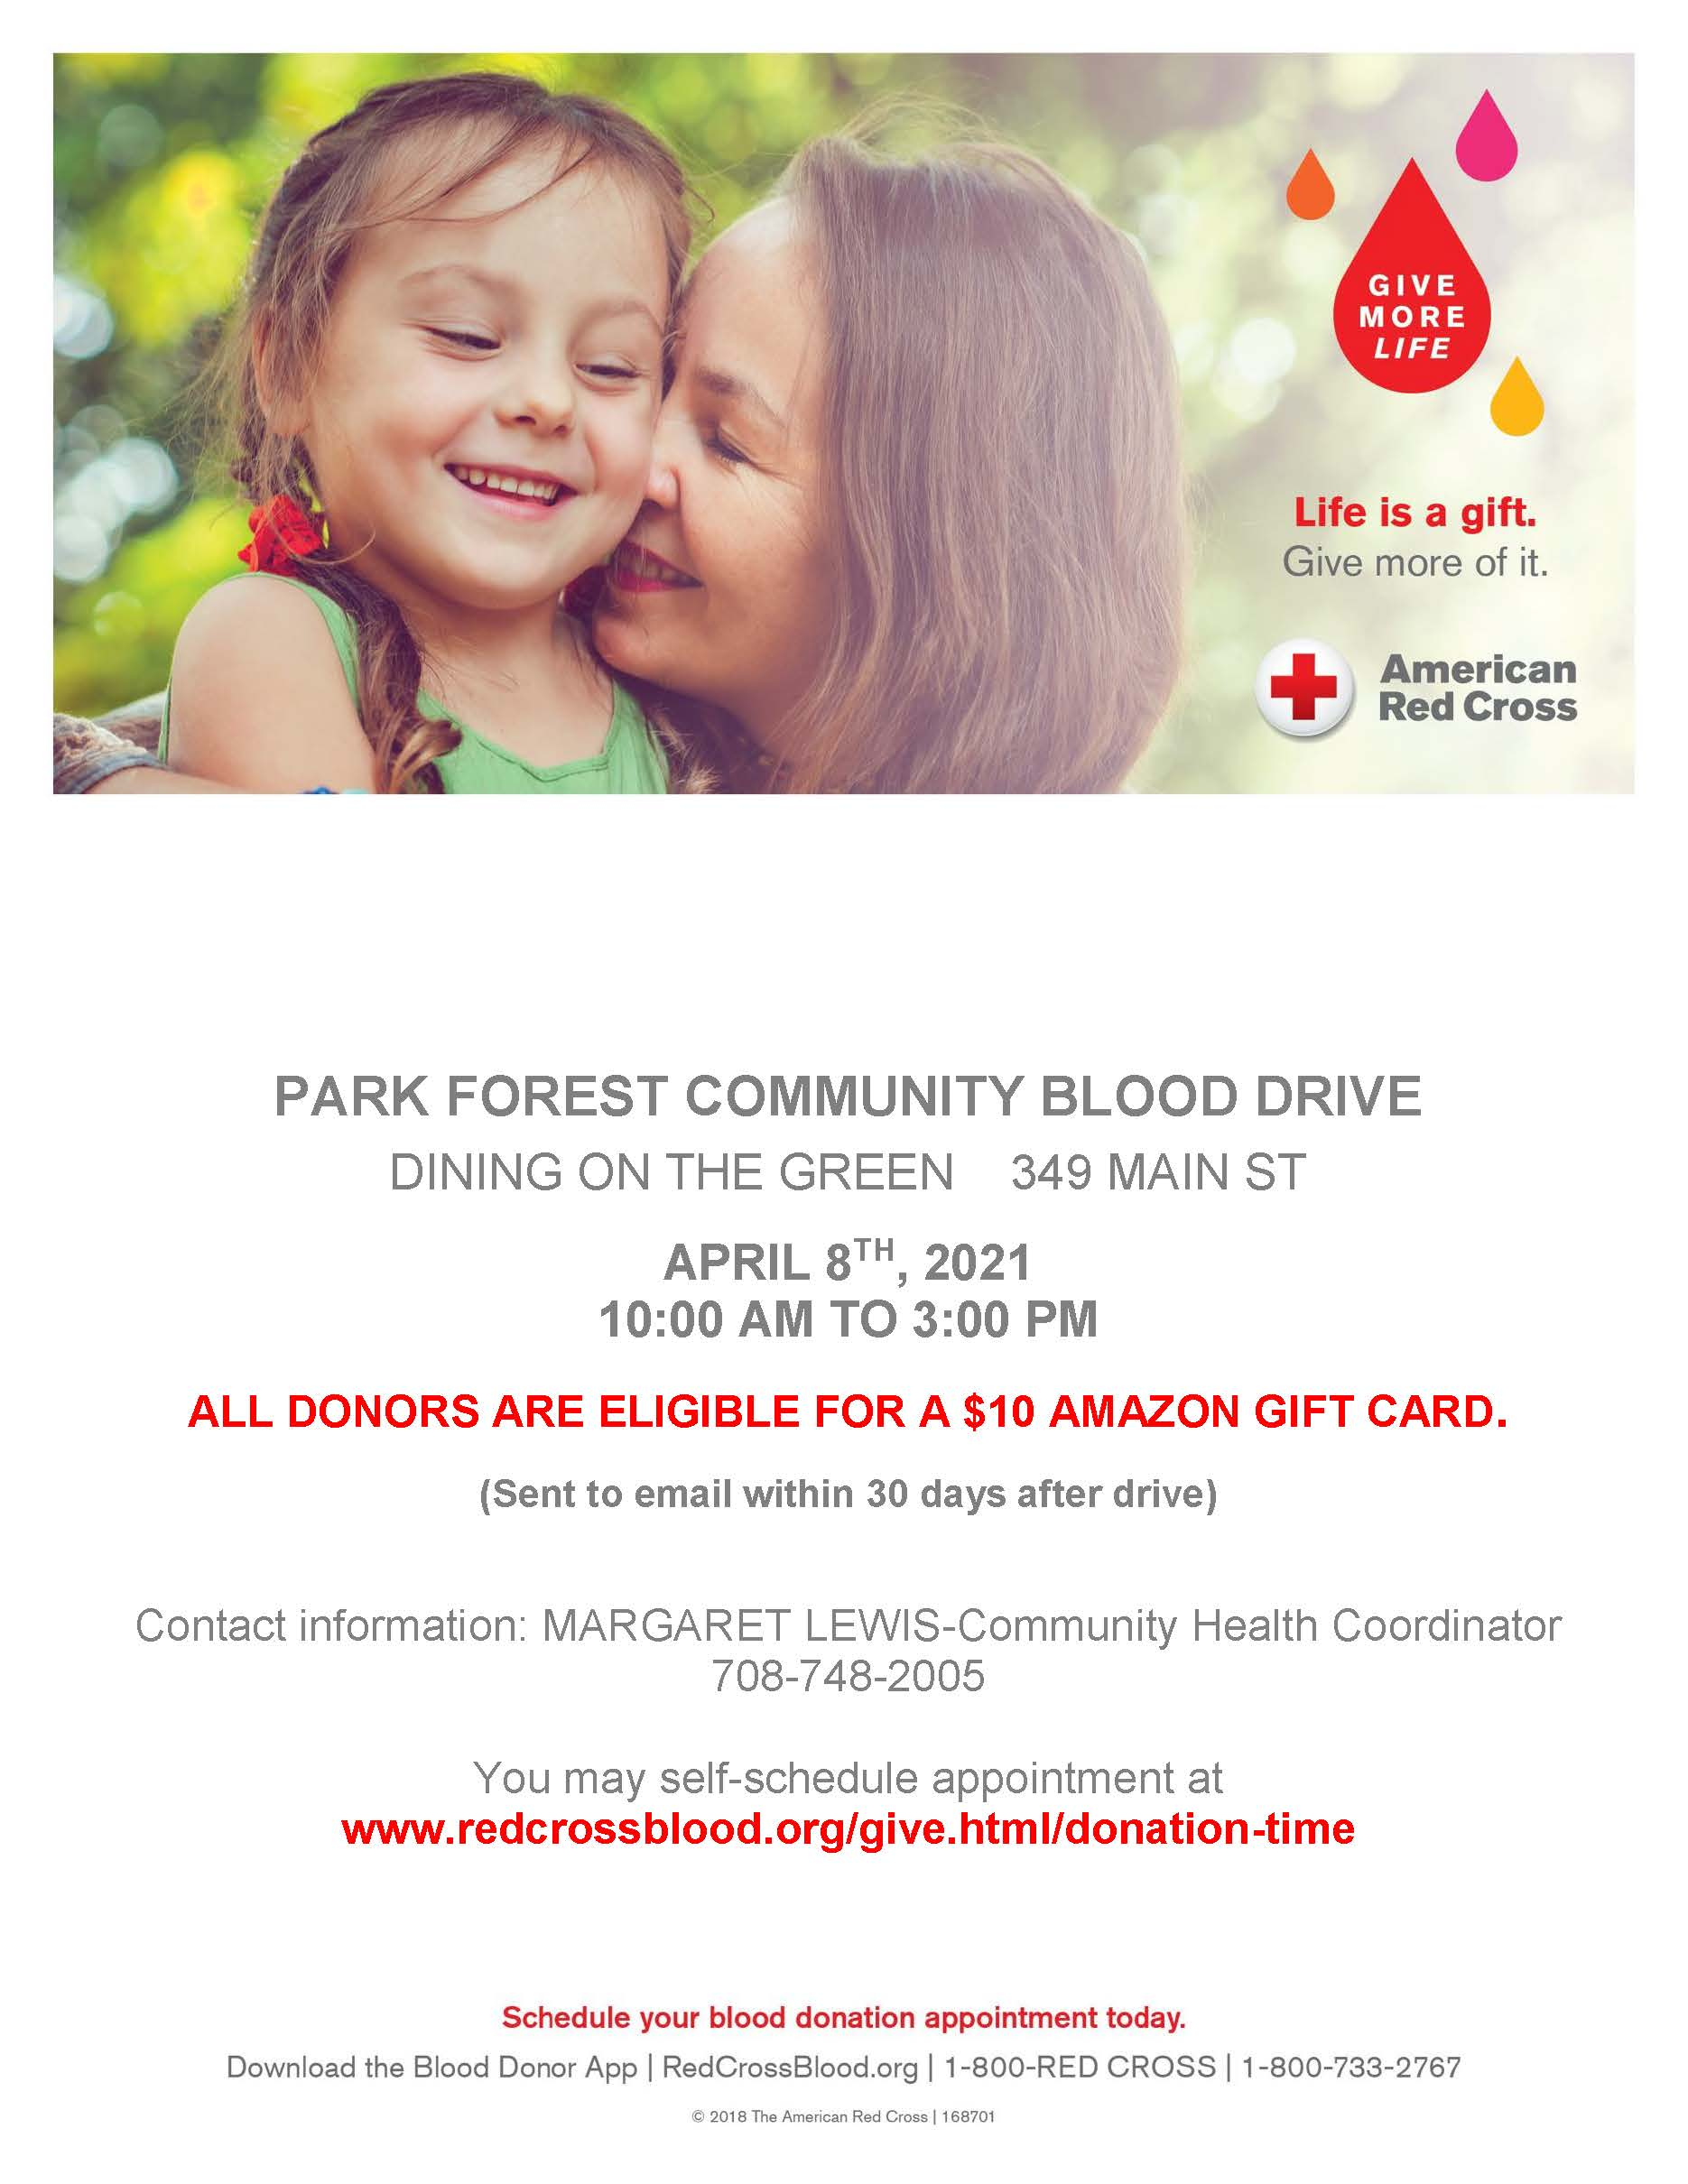 4_8_21 Blood Drive Flyer Rev 3_5_21